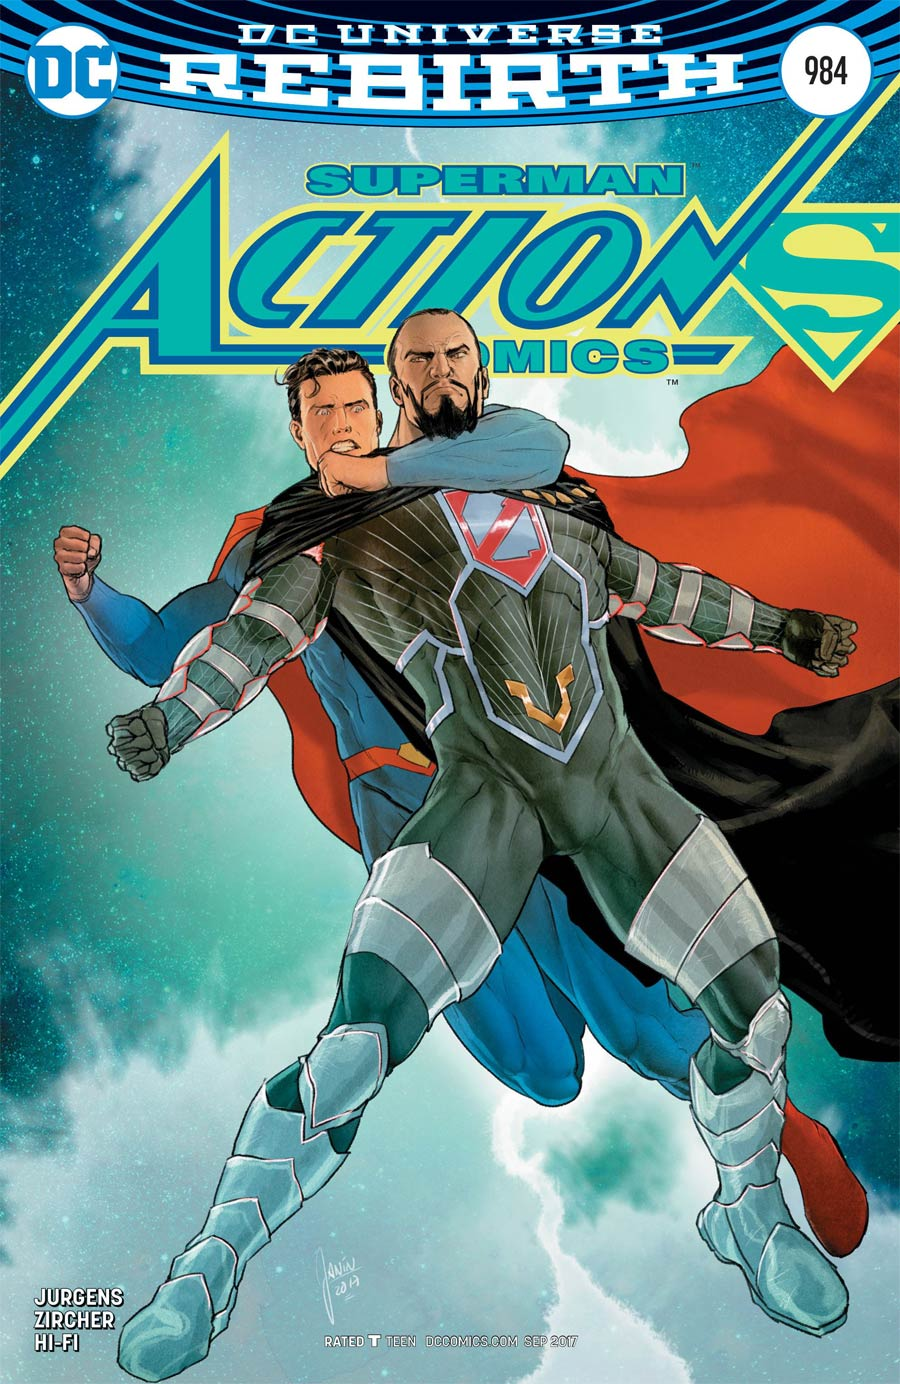 Action Comics Vol 2 #984 Cover B Variant Mikel Janin Cover